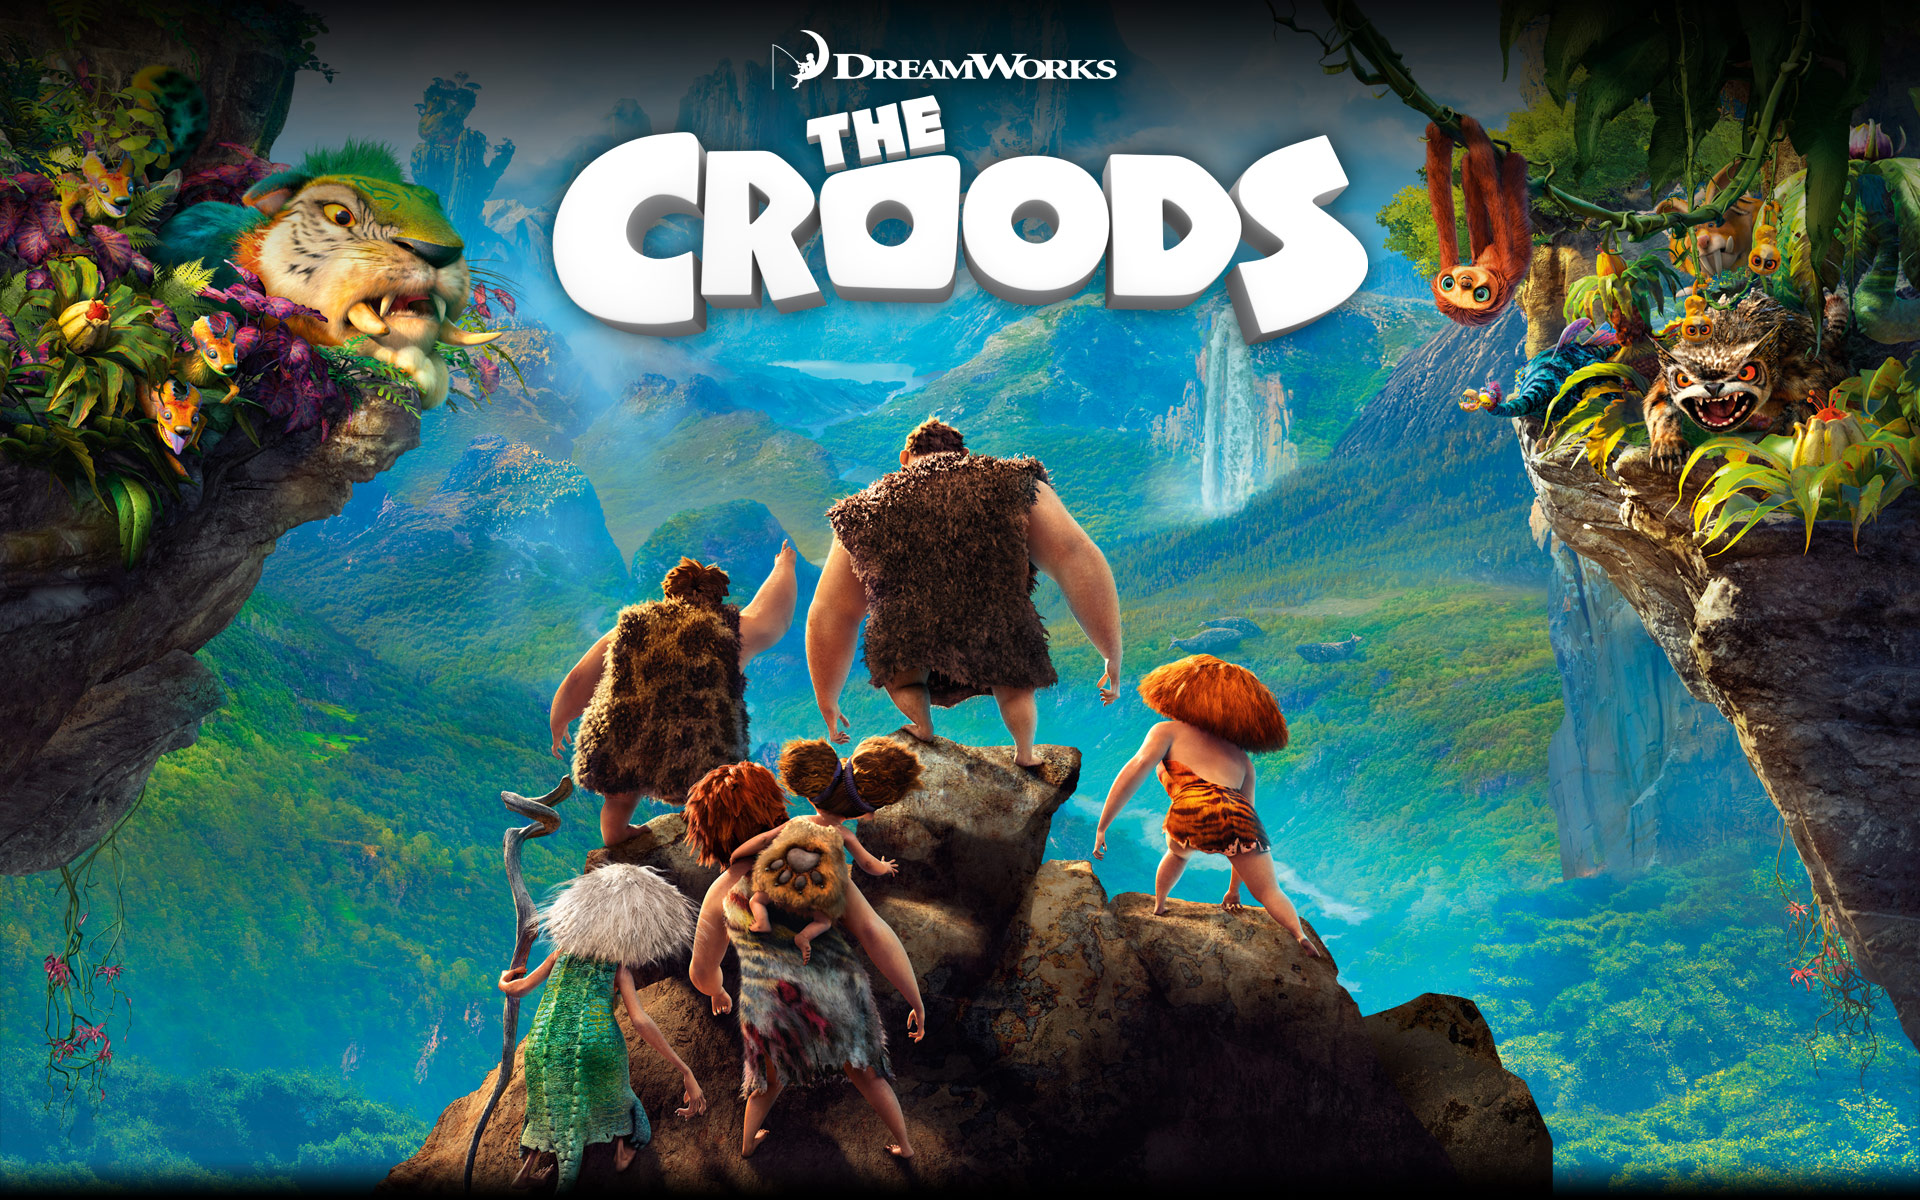 The Croods 2013 4146.44 Kb